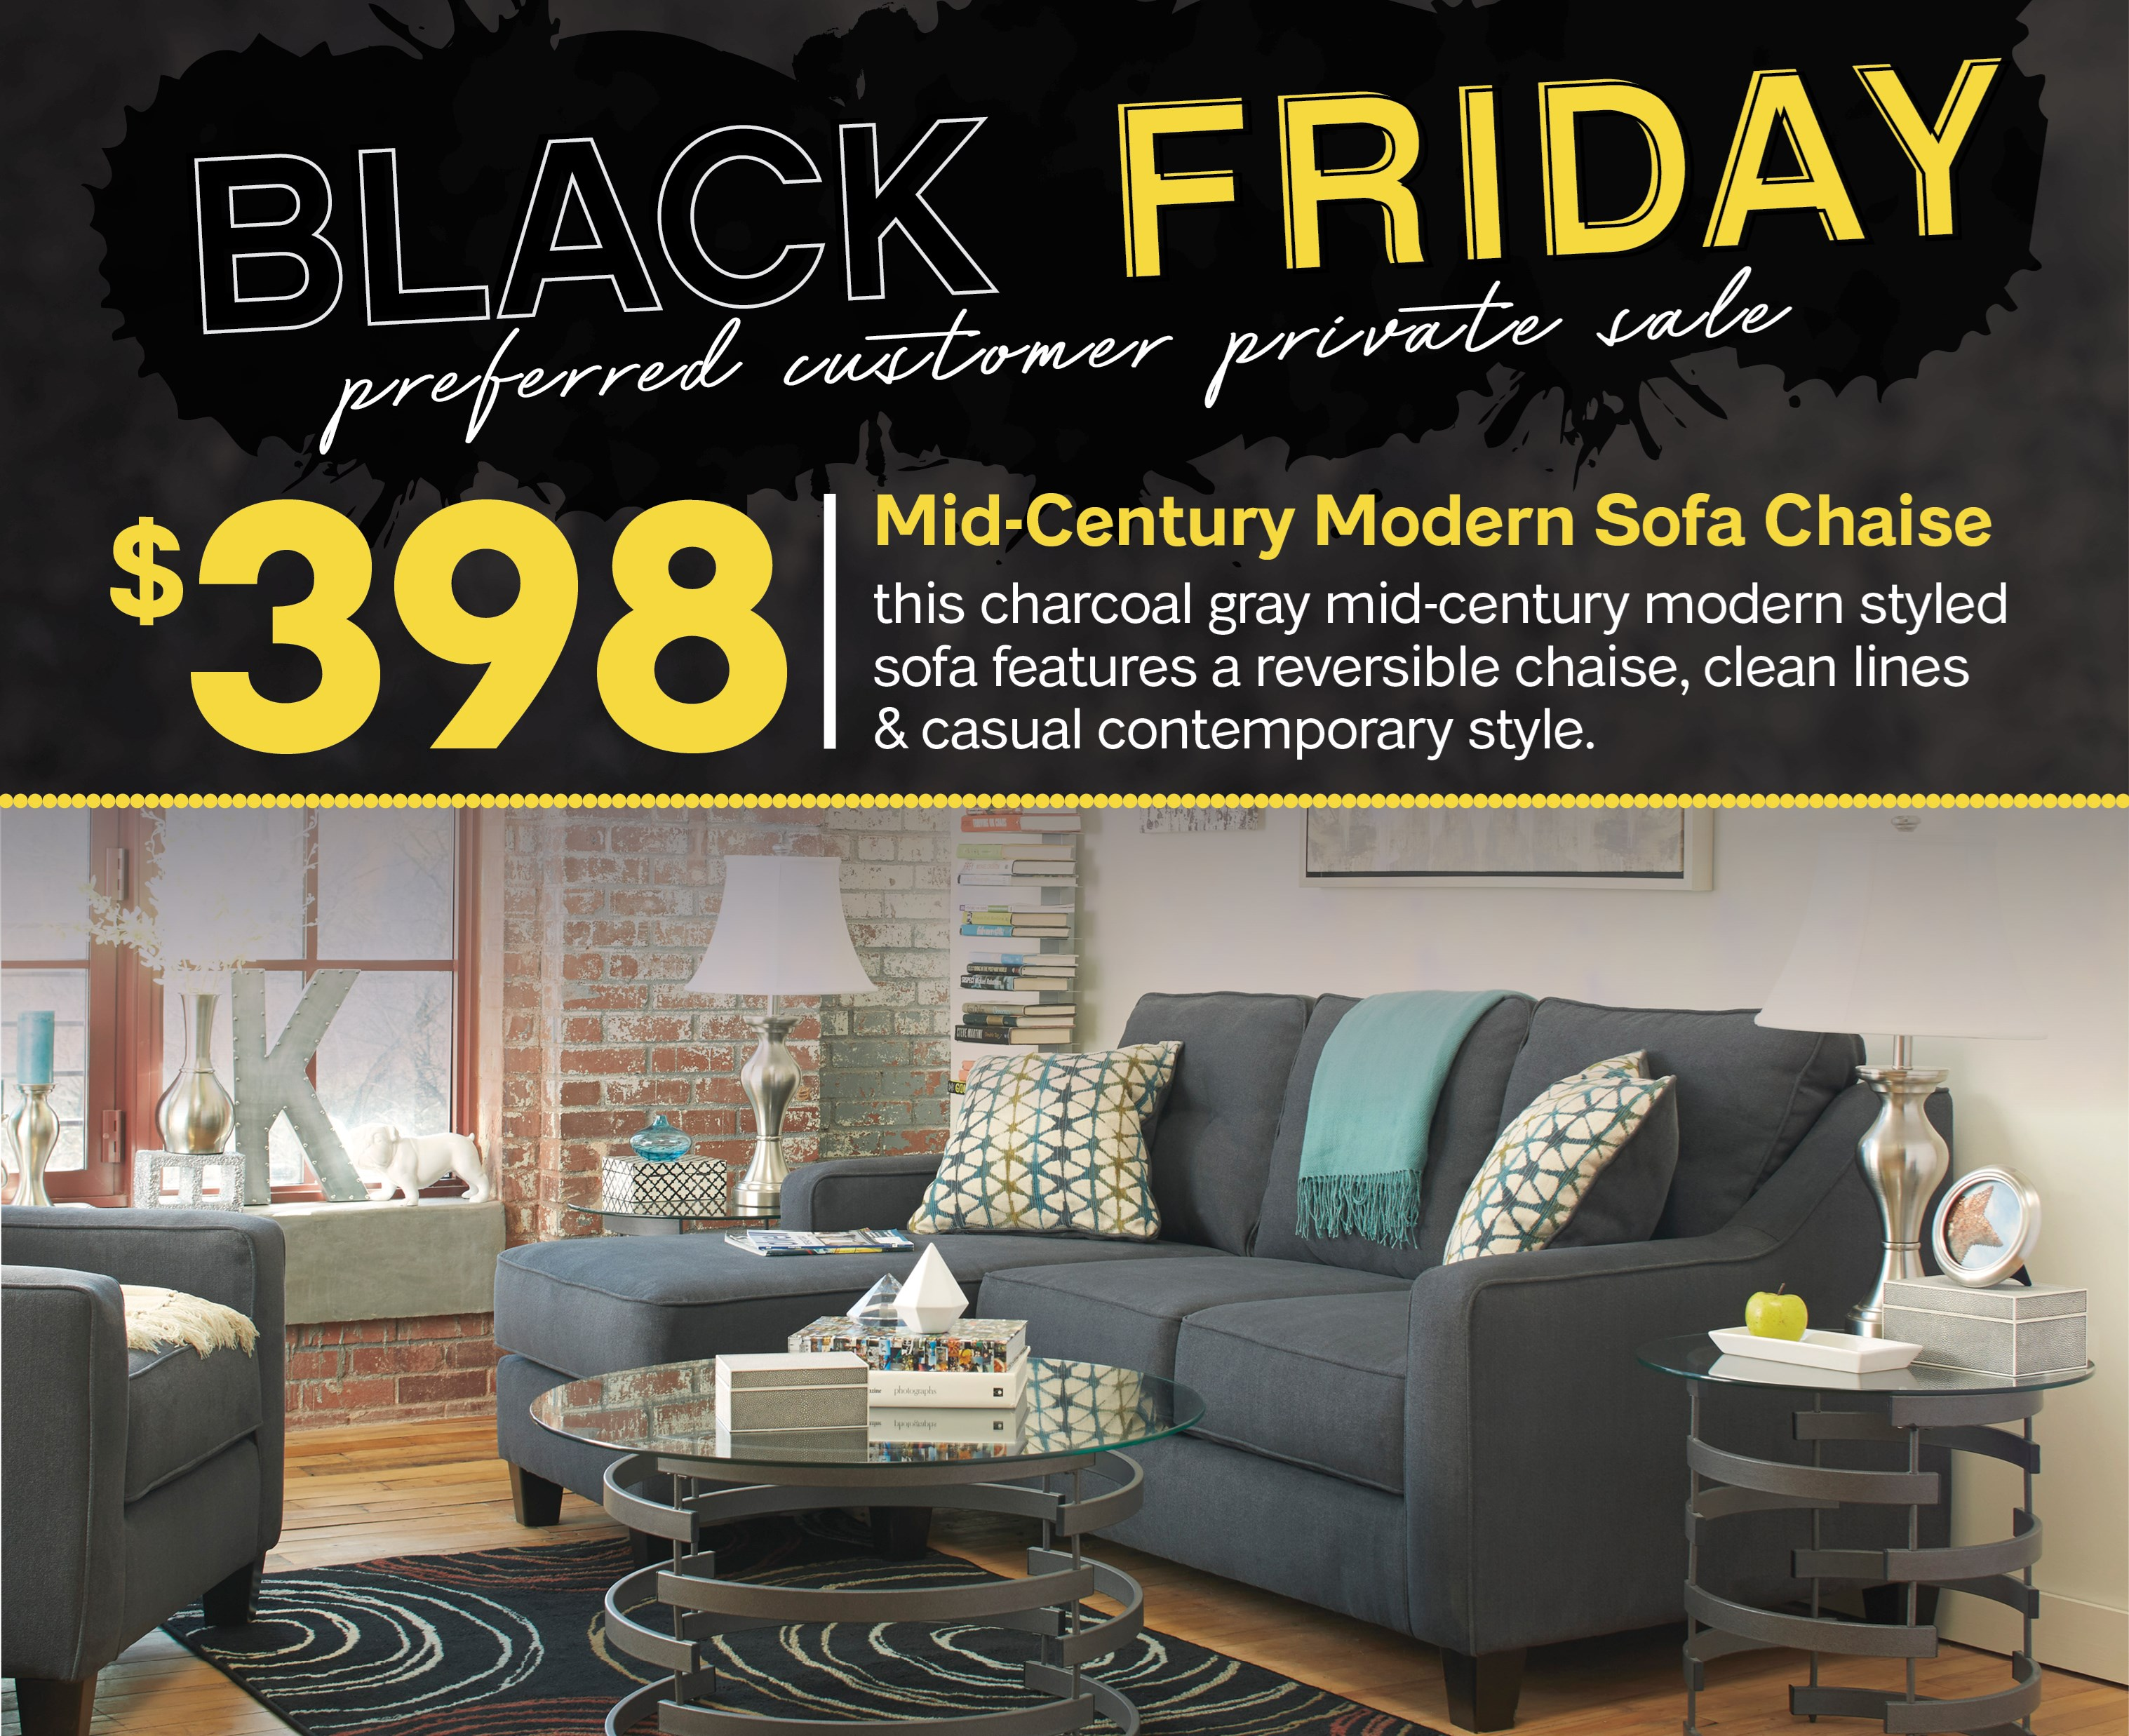 Furniture appliancemart black friday private preview